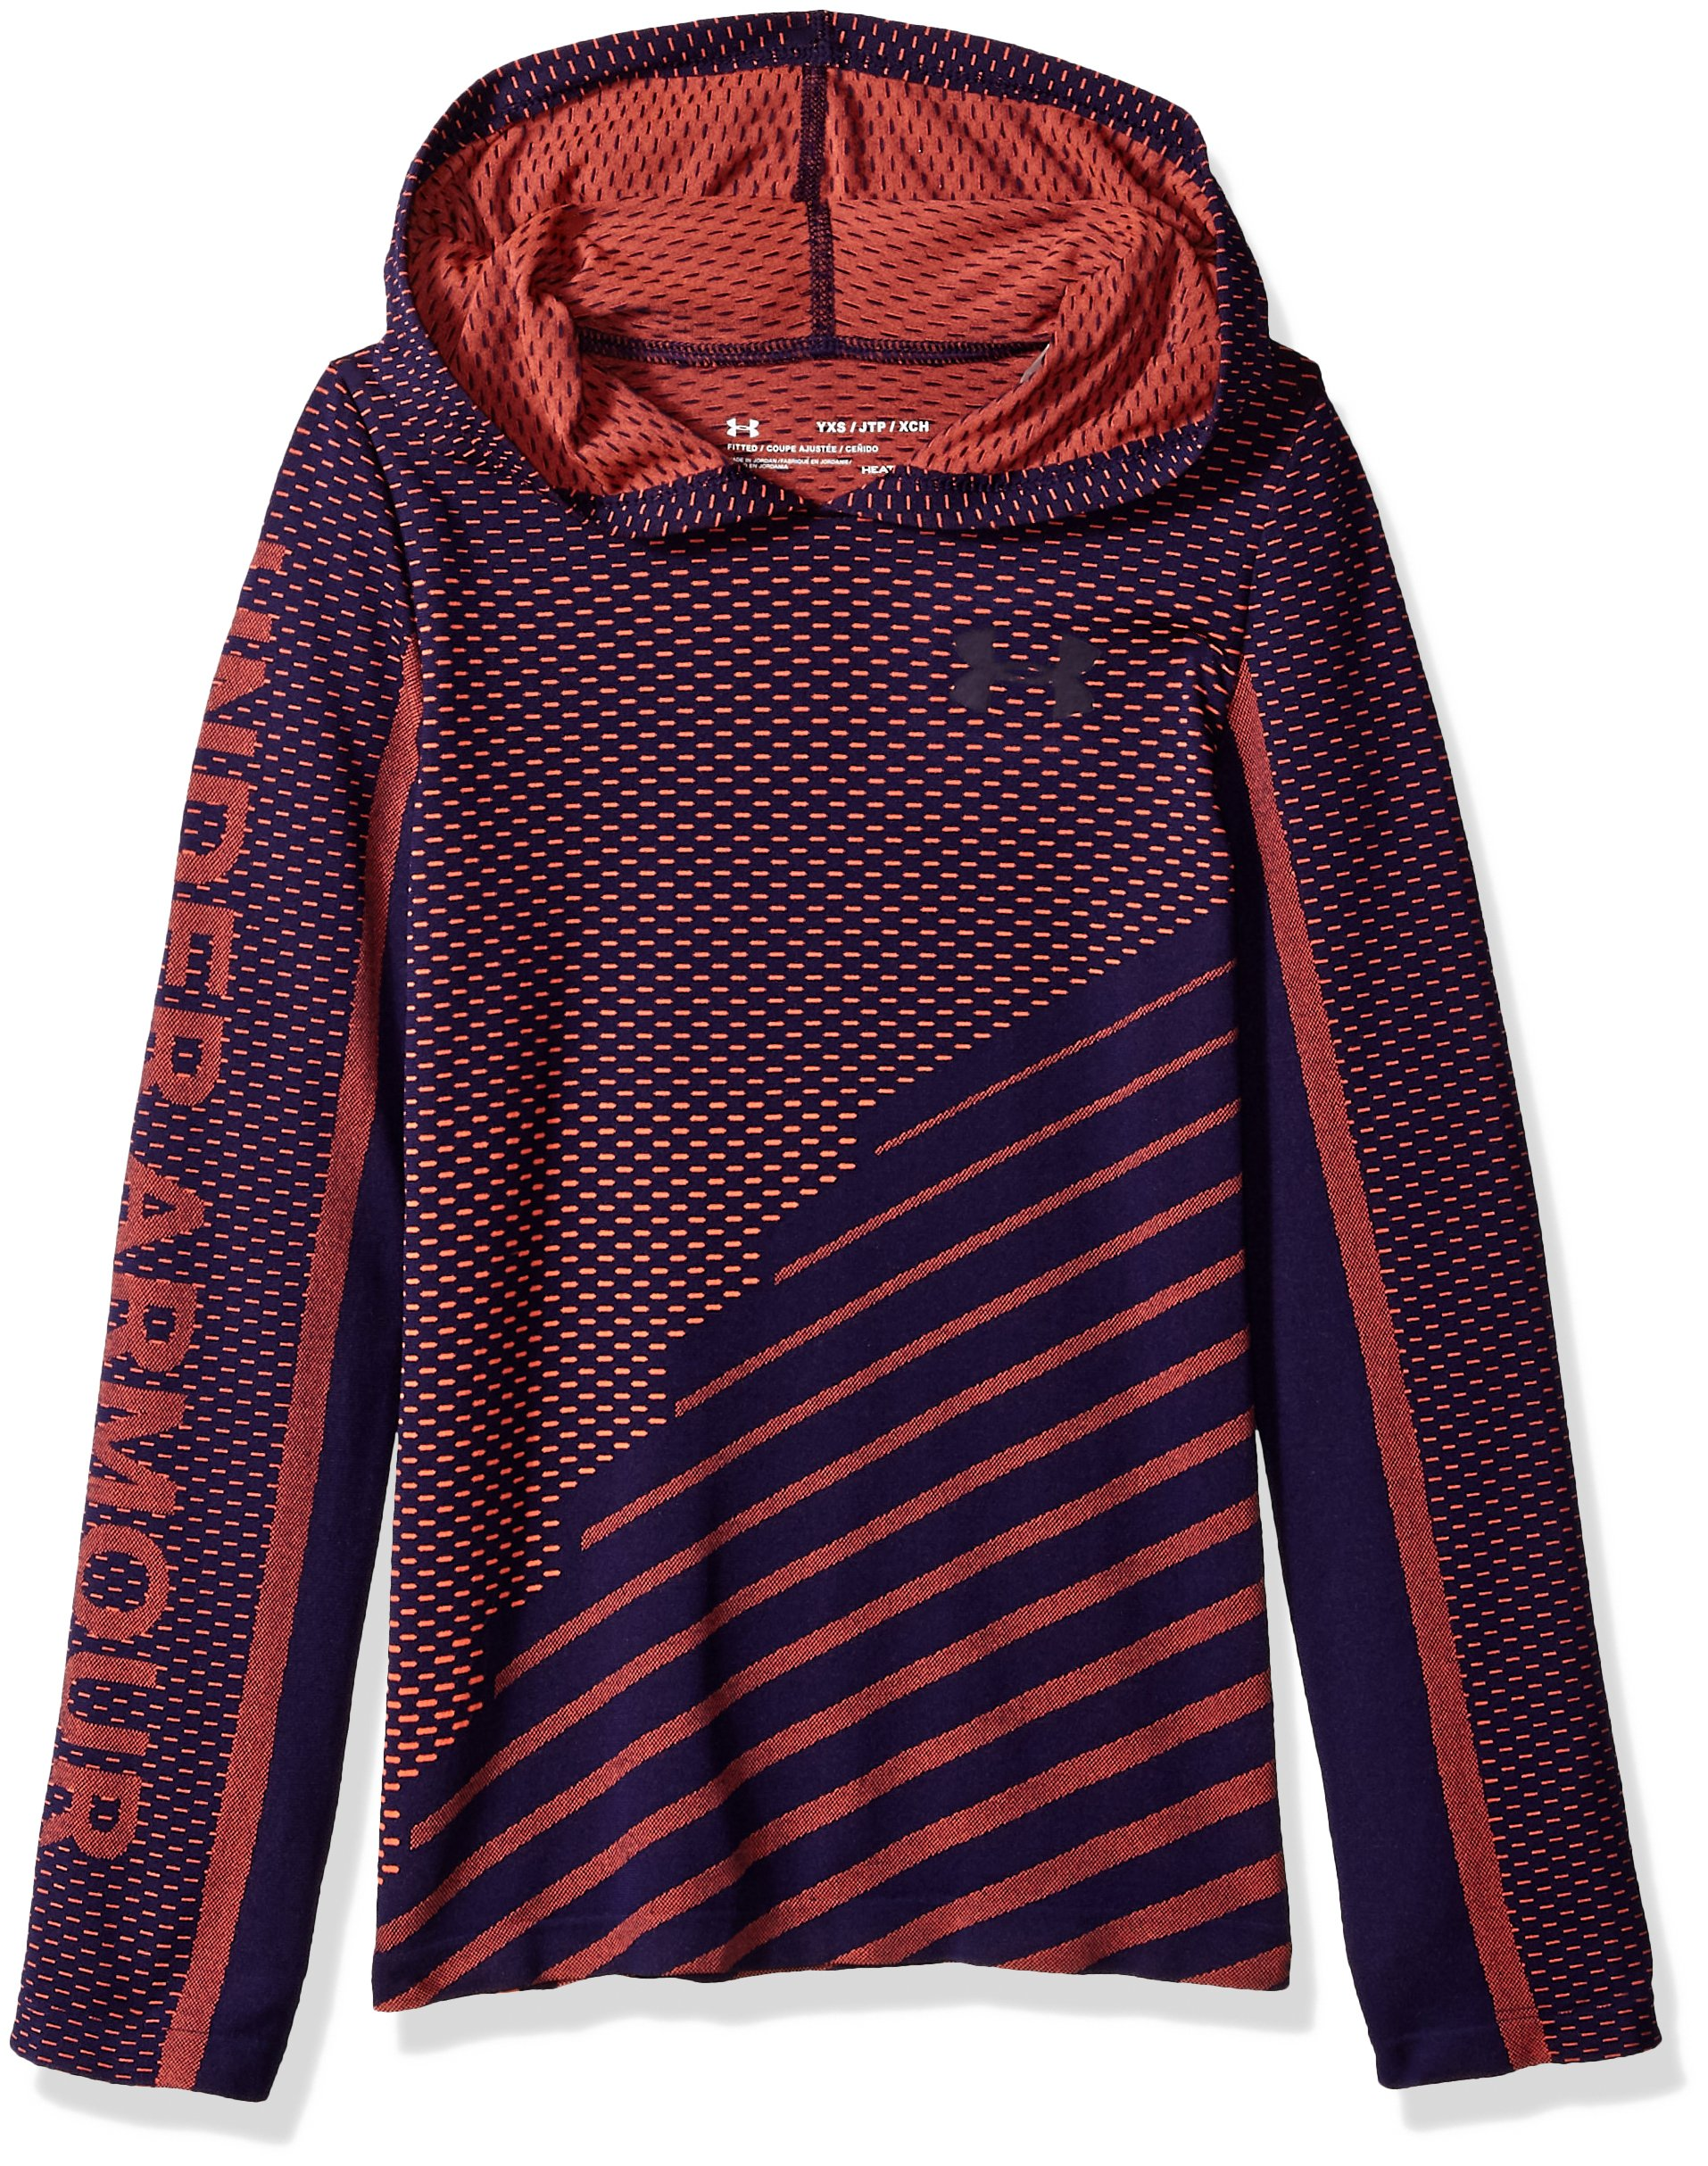 Under Armour Girls Seamless Hoodie, After Burn (877)/Purple Switch, Youth Small by Under Armour